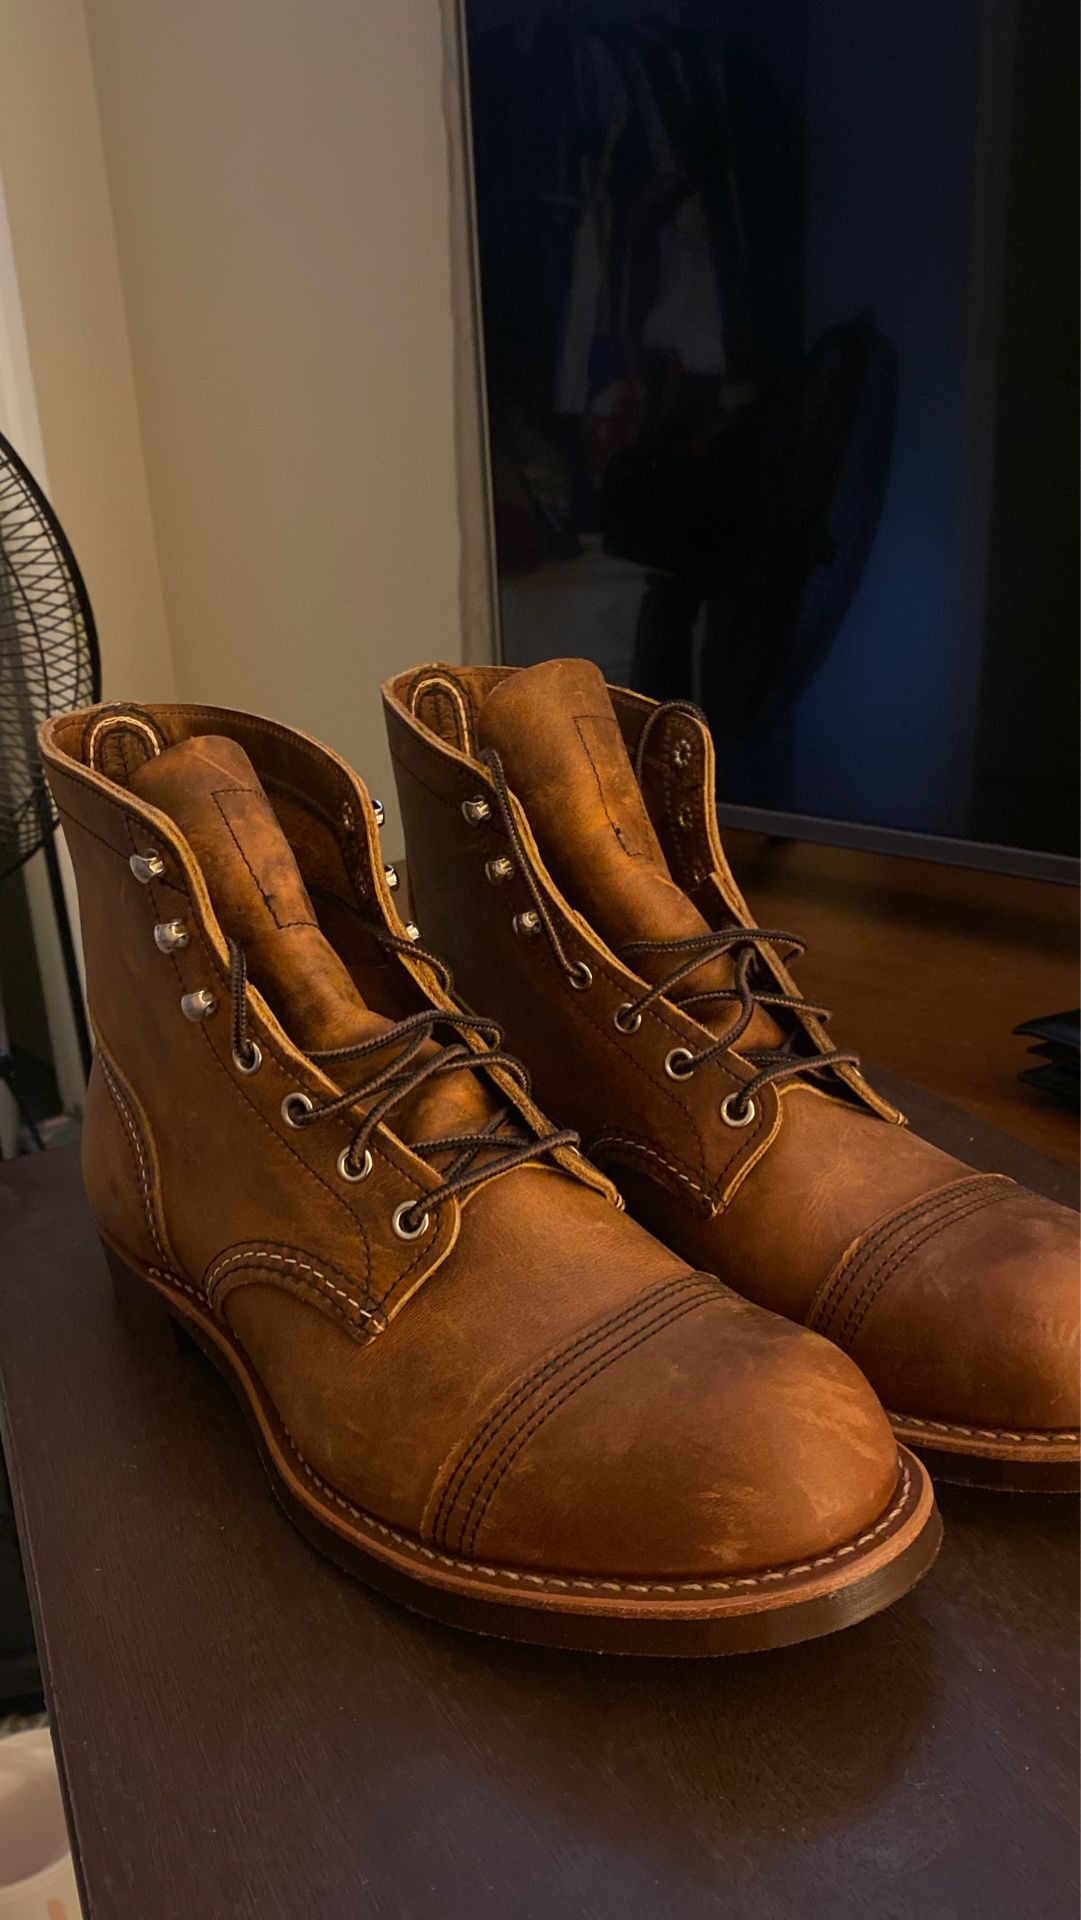 Red Wing Boots (Never worn) w/ red wing brand leather cream